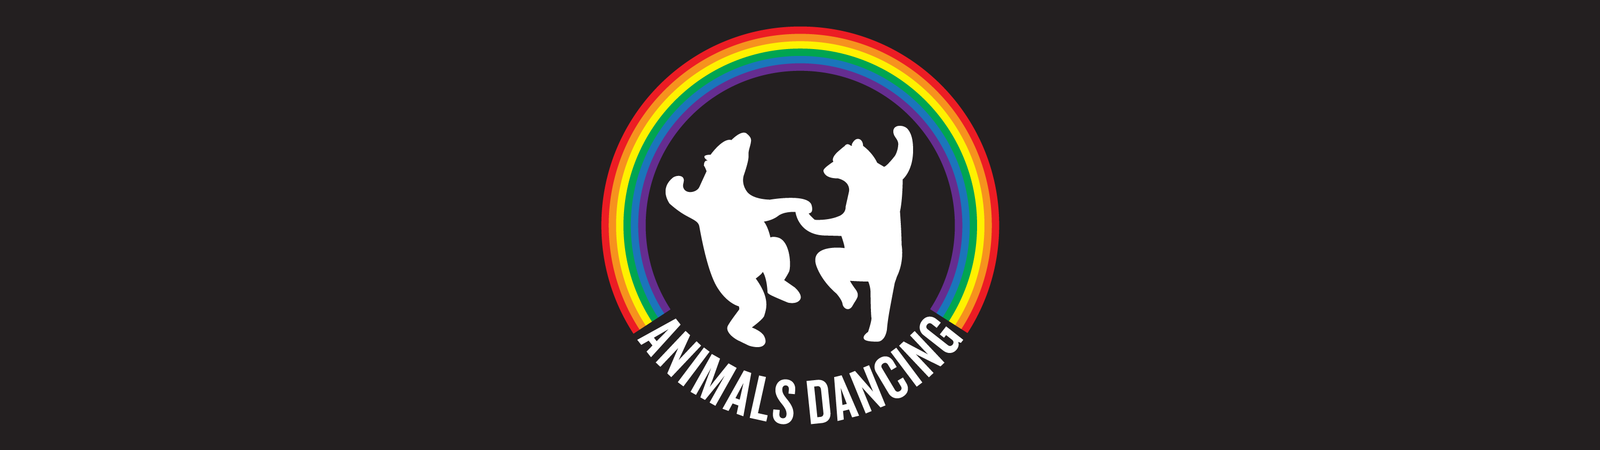 Animals Dancing